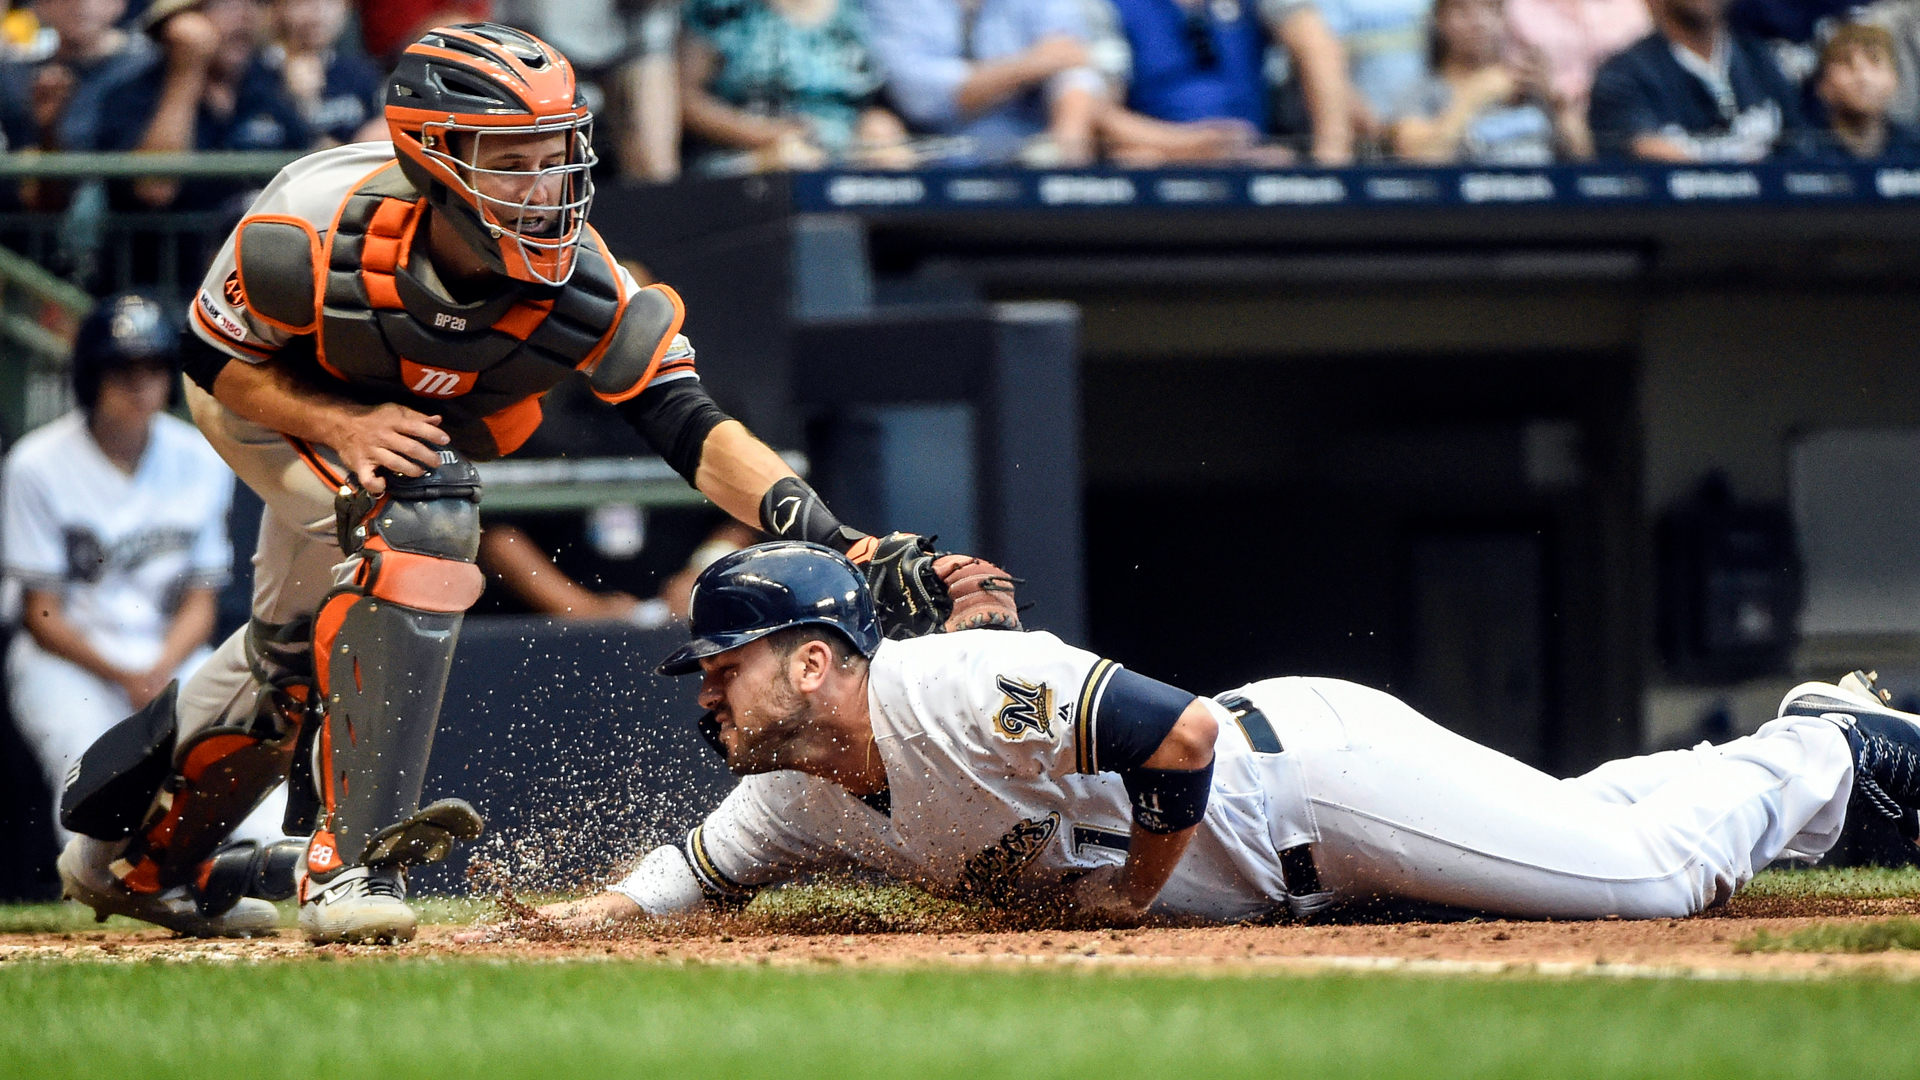 Giants execute incredible relay to nail Brewers' Mike Moustakas at